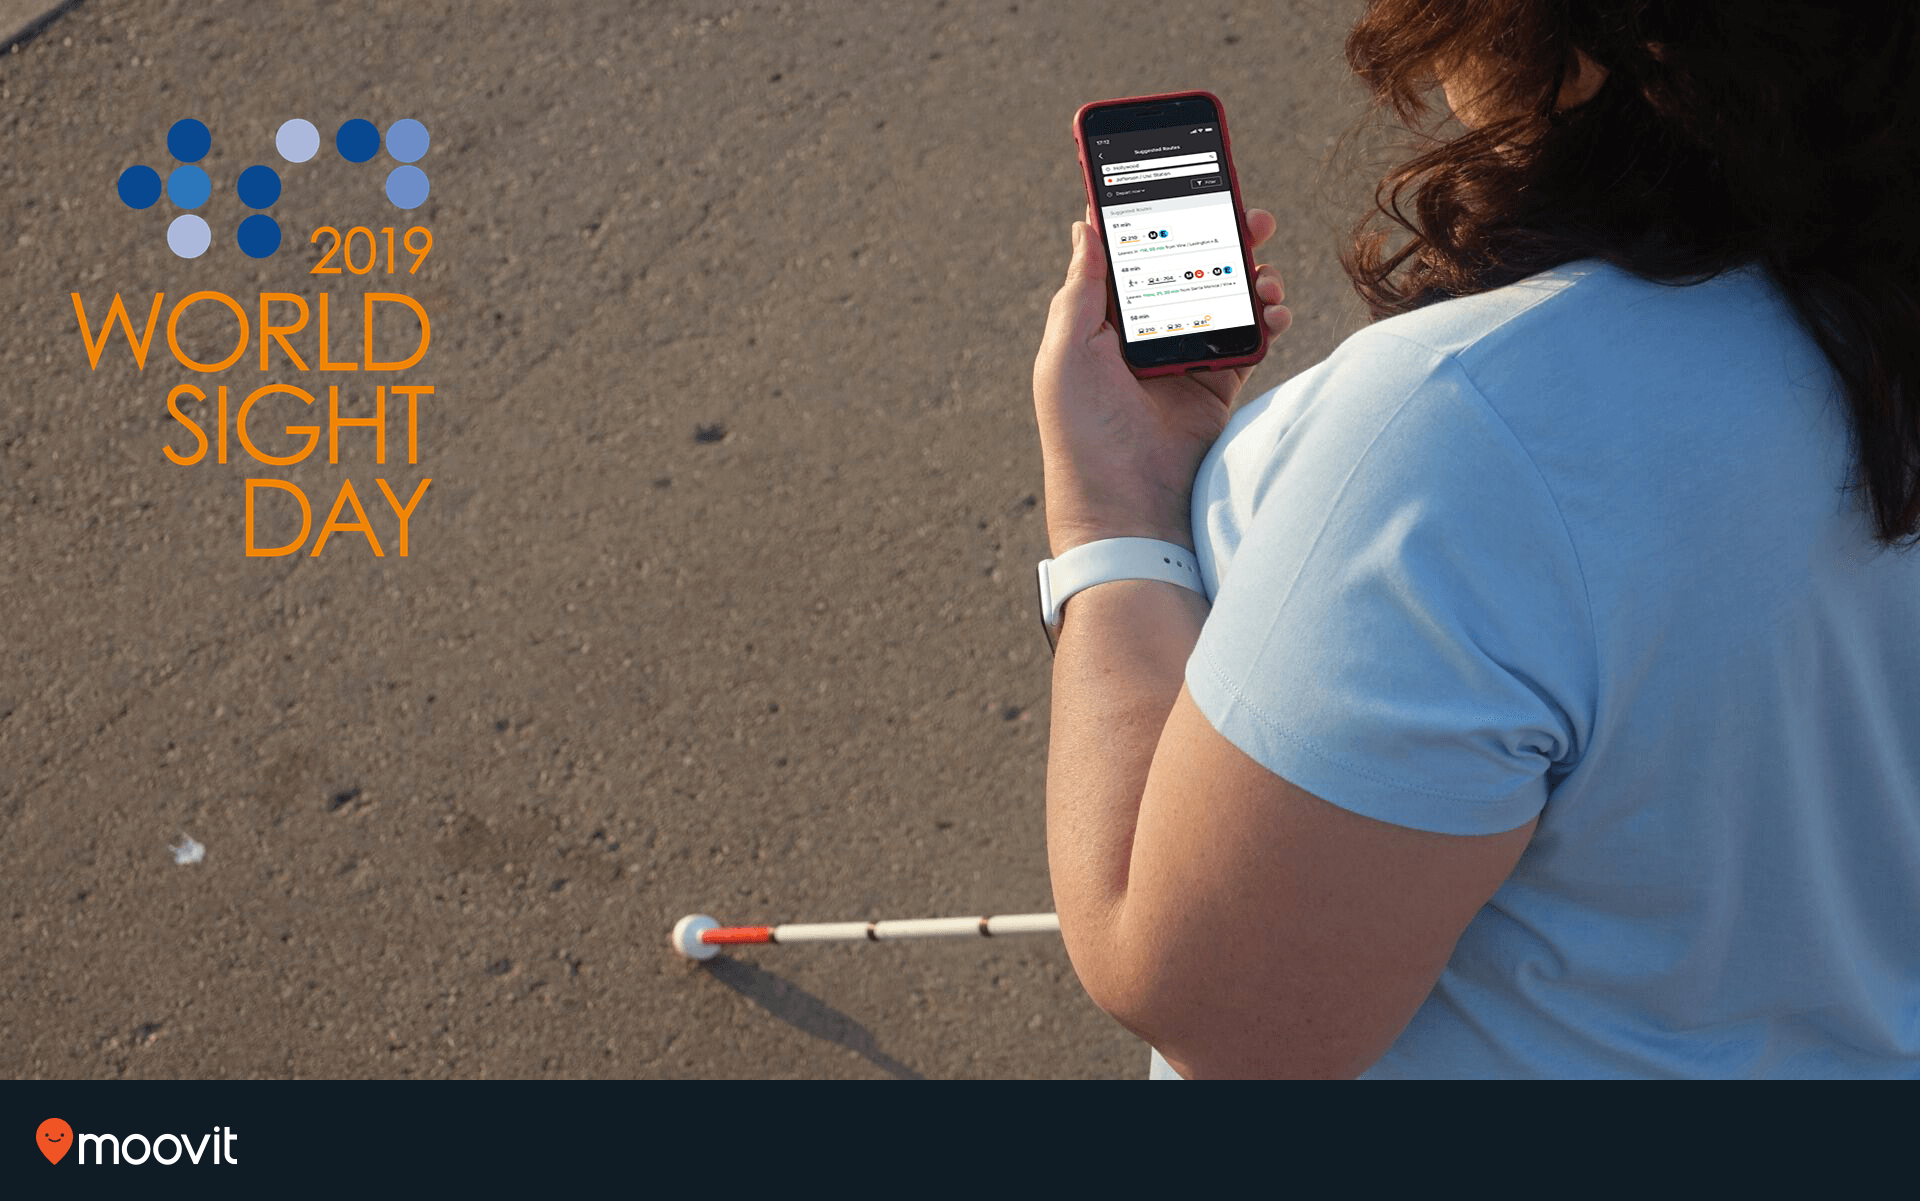 World Sight Day 2019 - Moovit